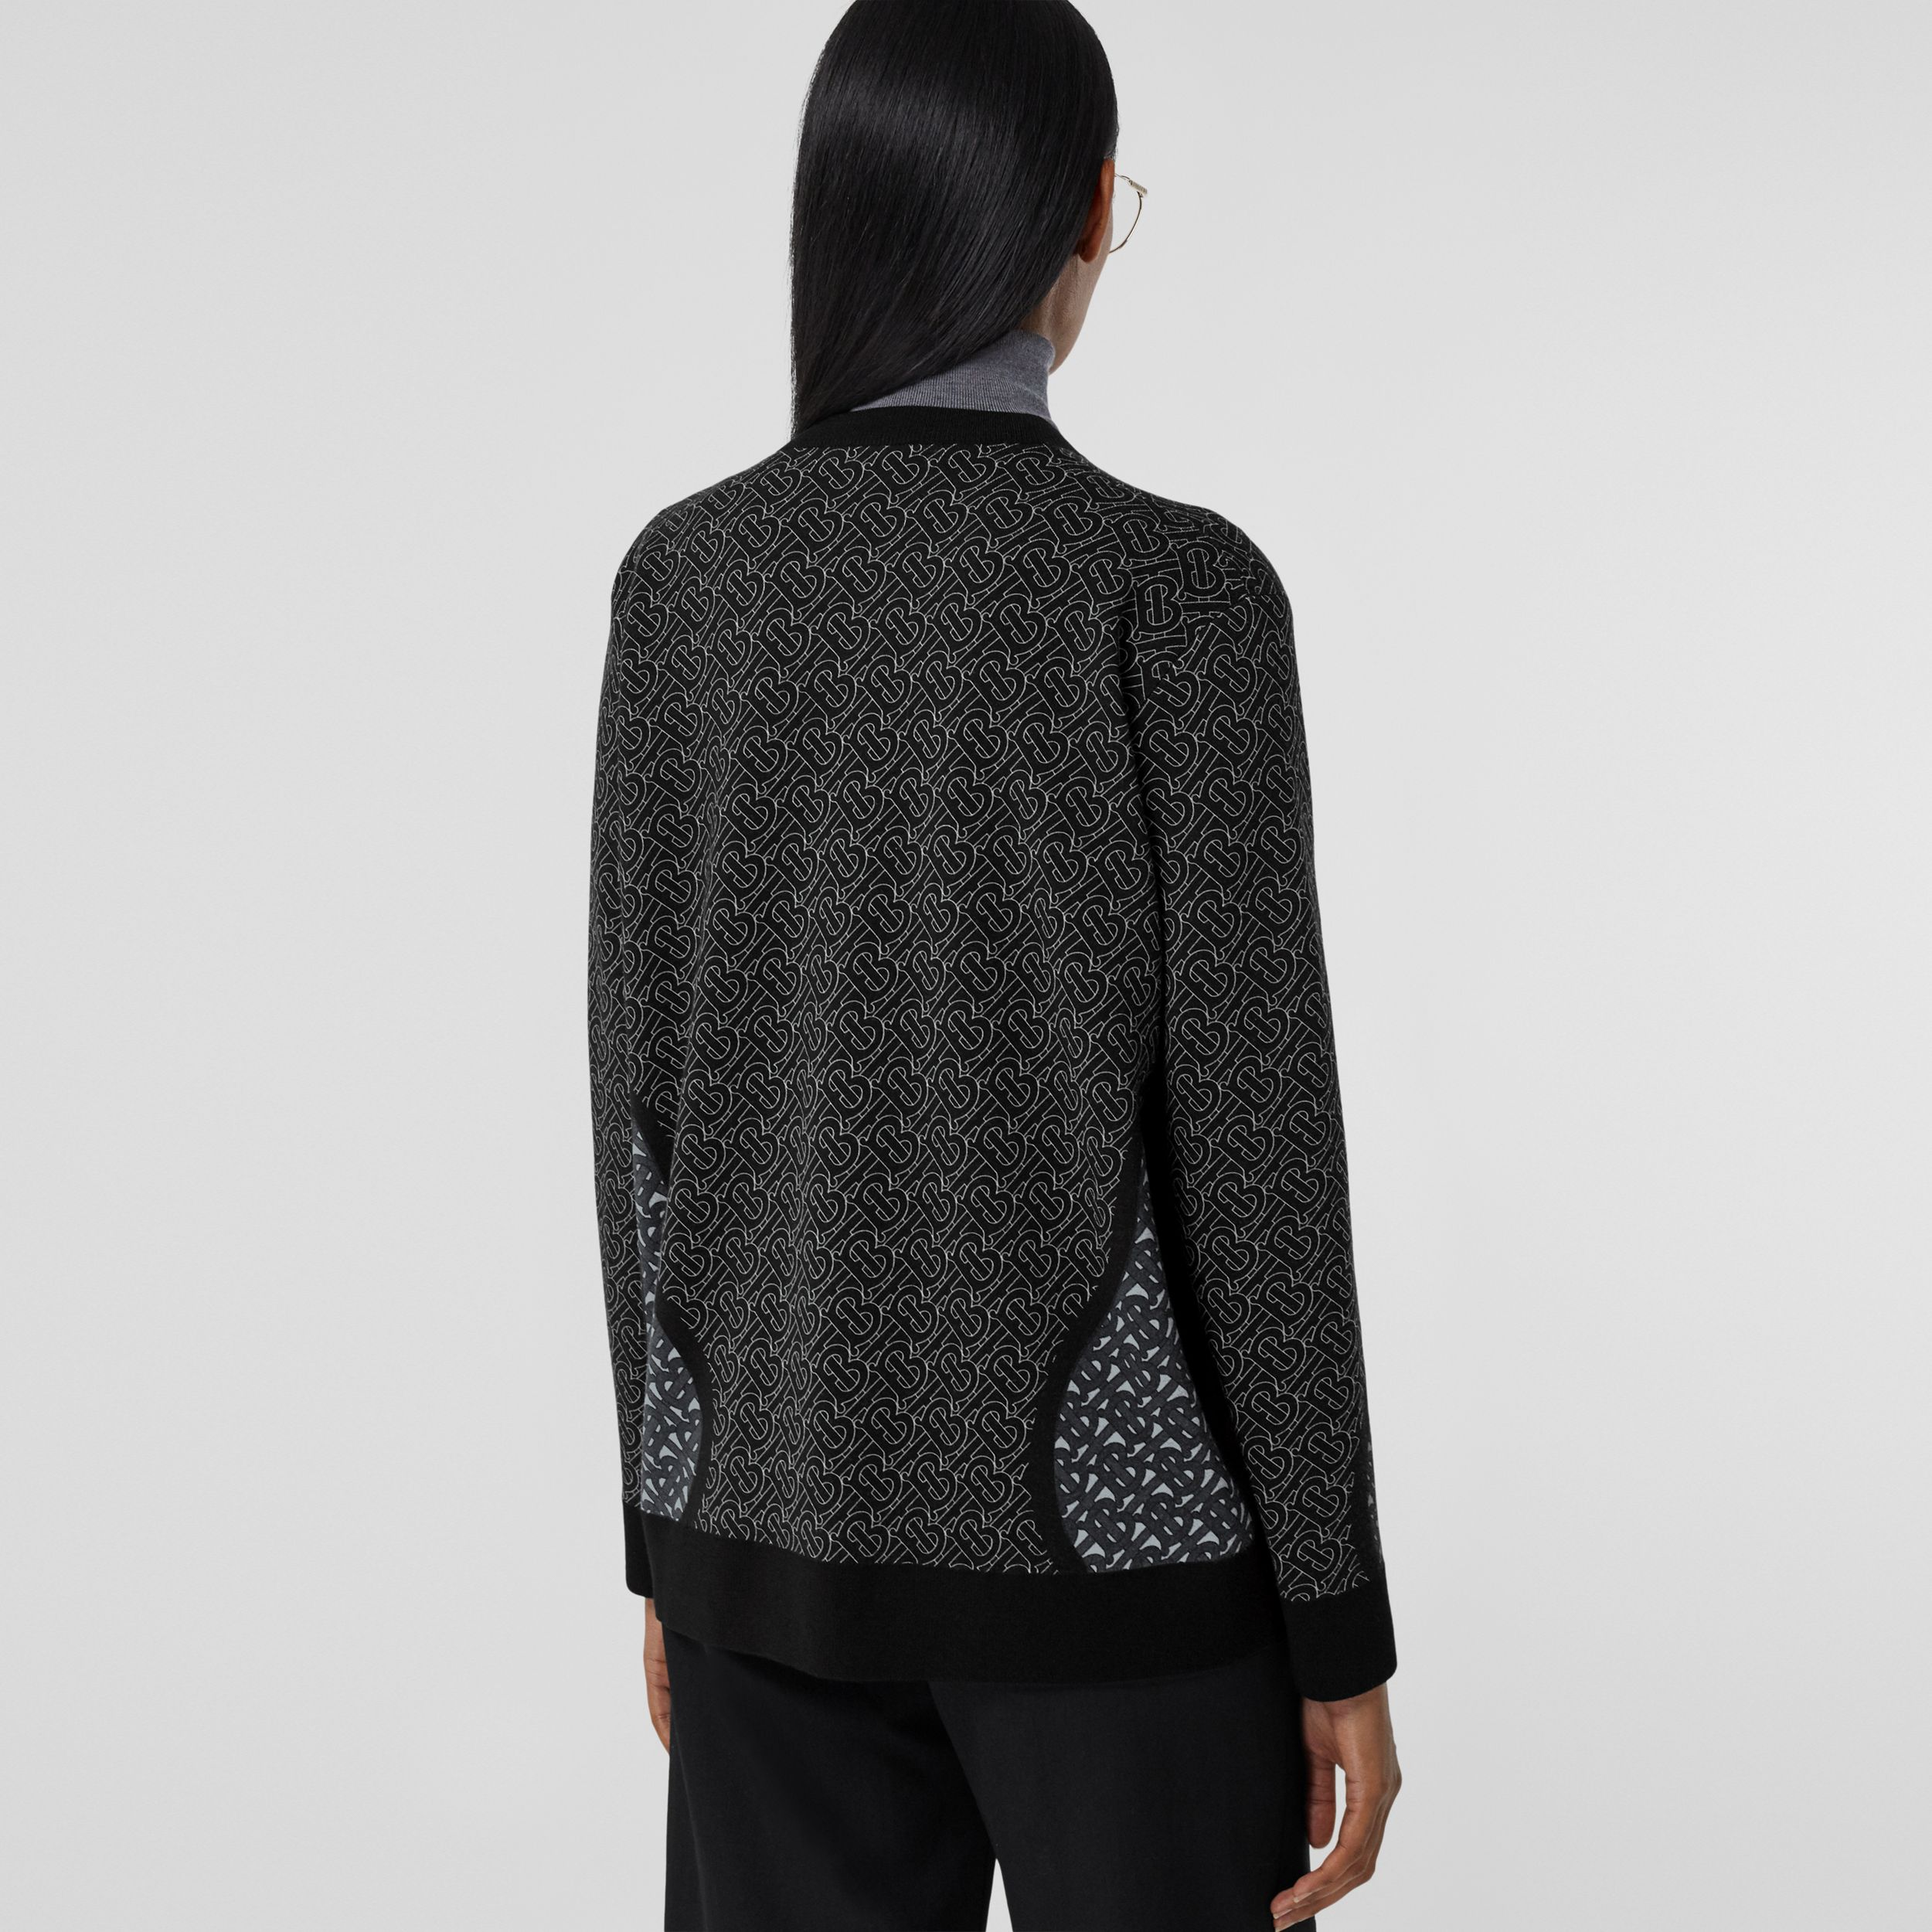 Unicorn Print Technical Merino Wool Cardigan in Black - Women | Burberry Hong Kong S.A.R. - 3